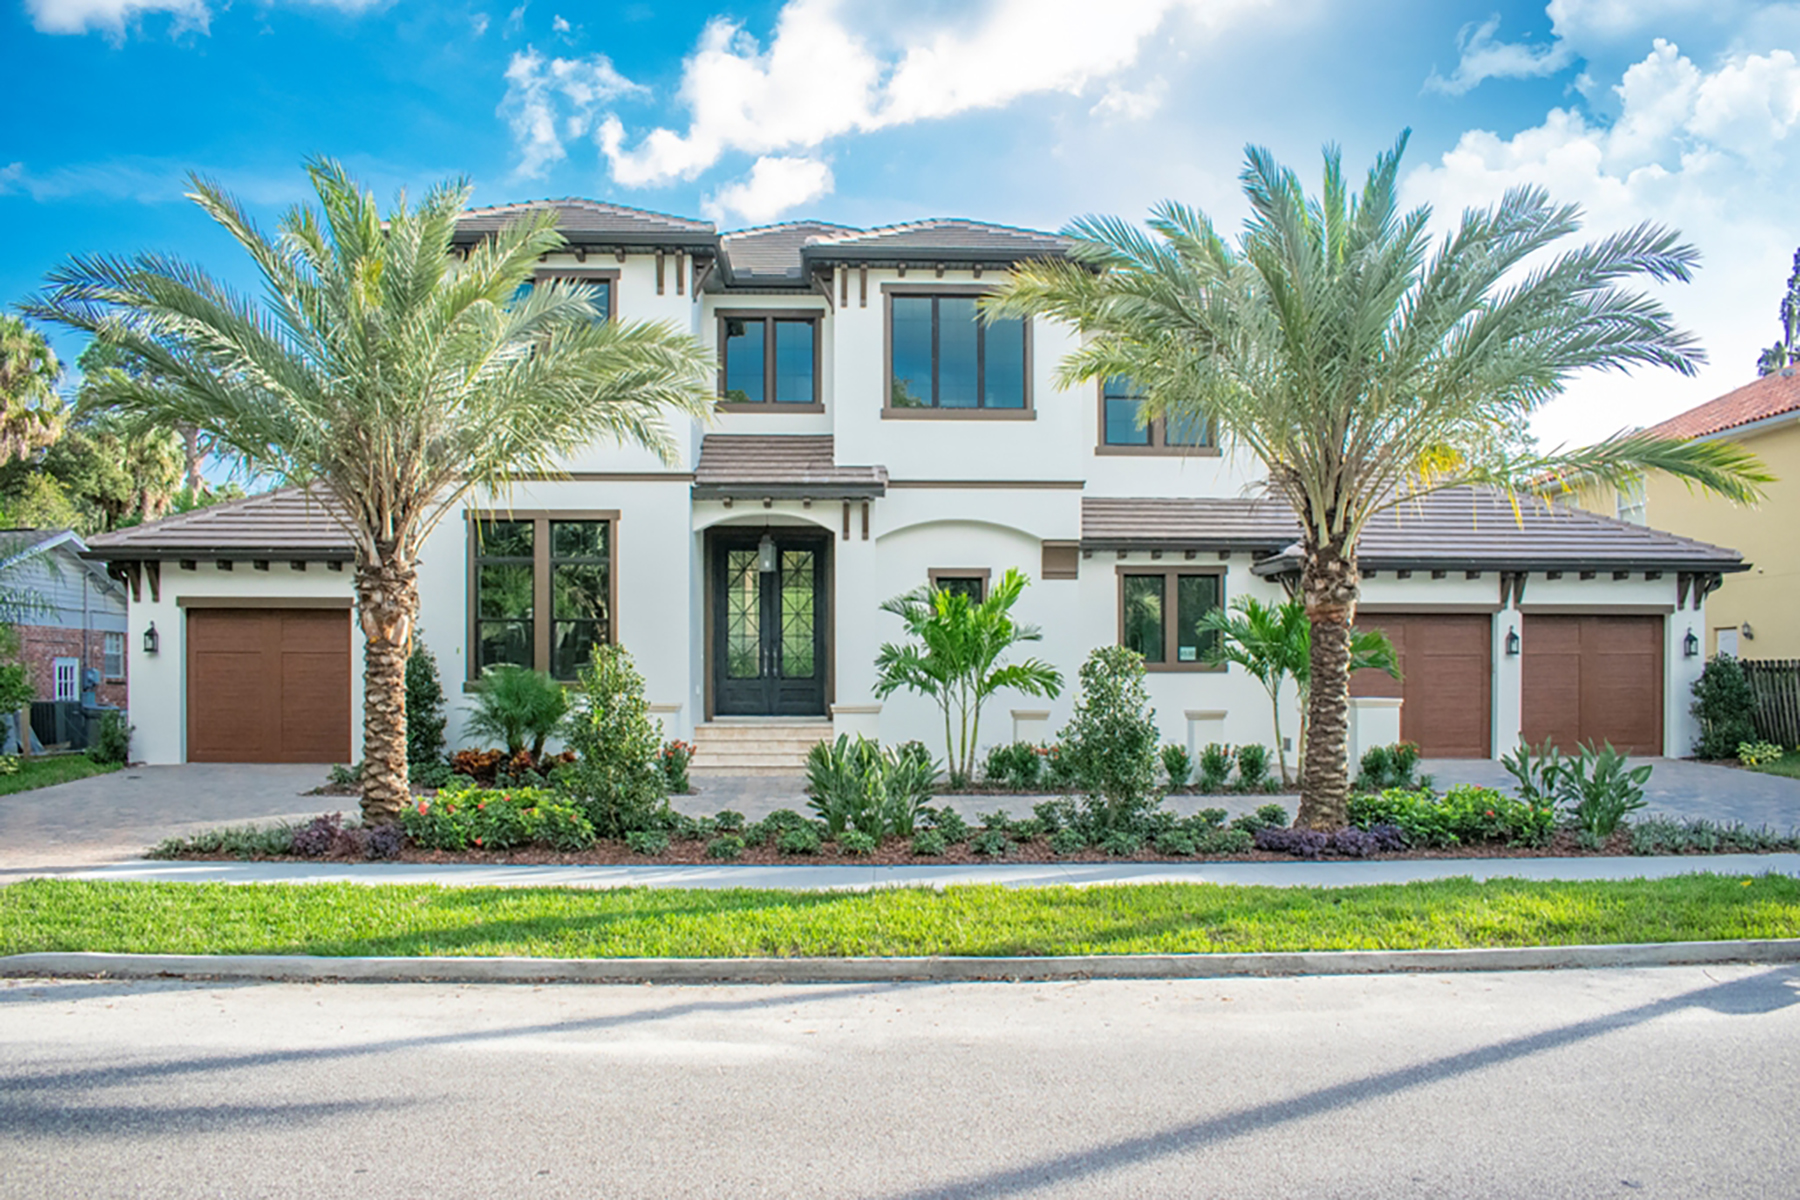 Single Family Homes for Sale at SOUTH TAMPA 4530 W Swann Ave Tampa, Florida 33609 United States